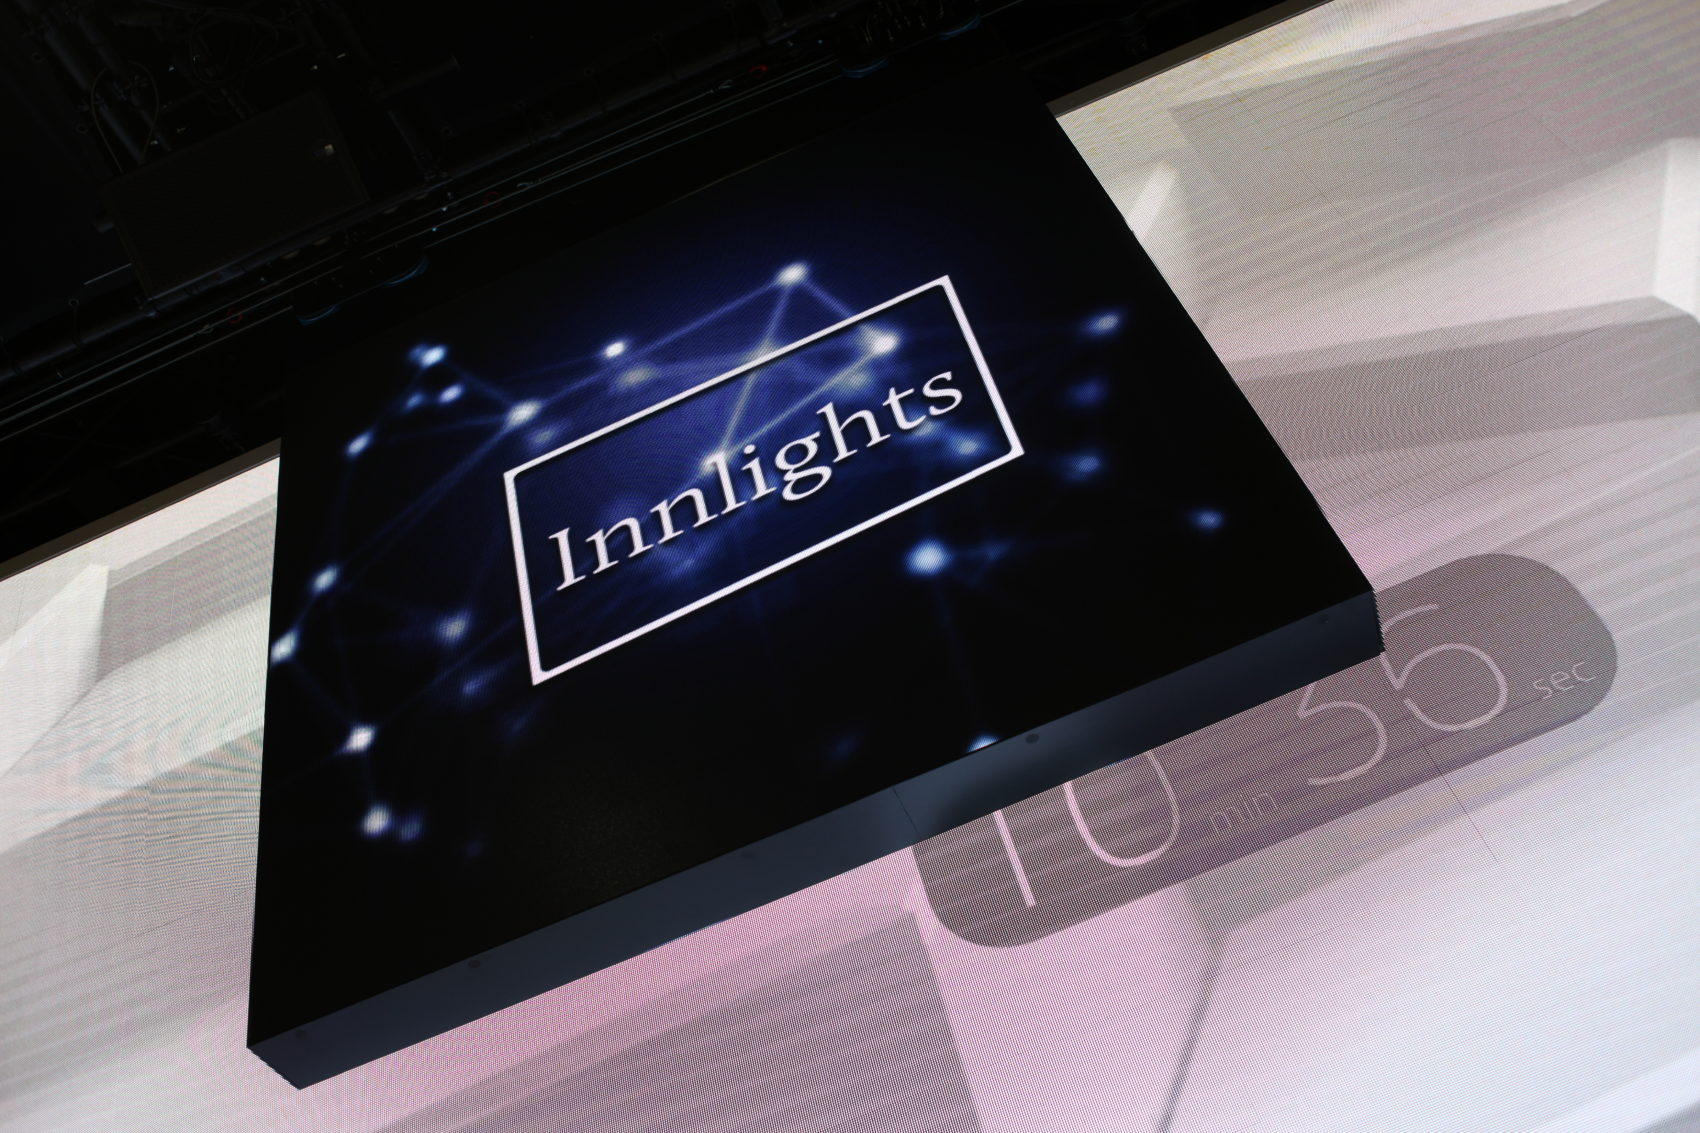 Innlights Messestand - InnScreen J2 - BOE 2017 - kinetic LED-screen